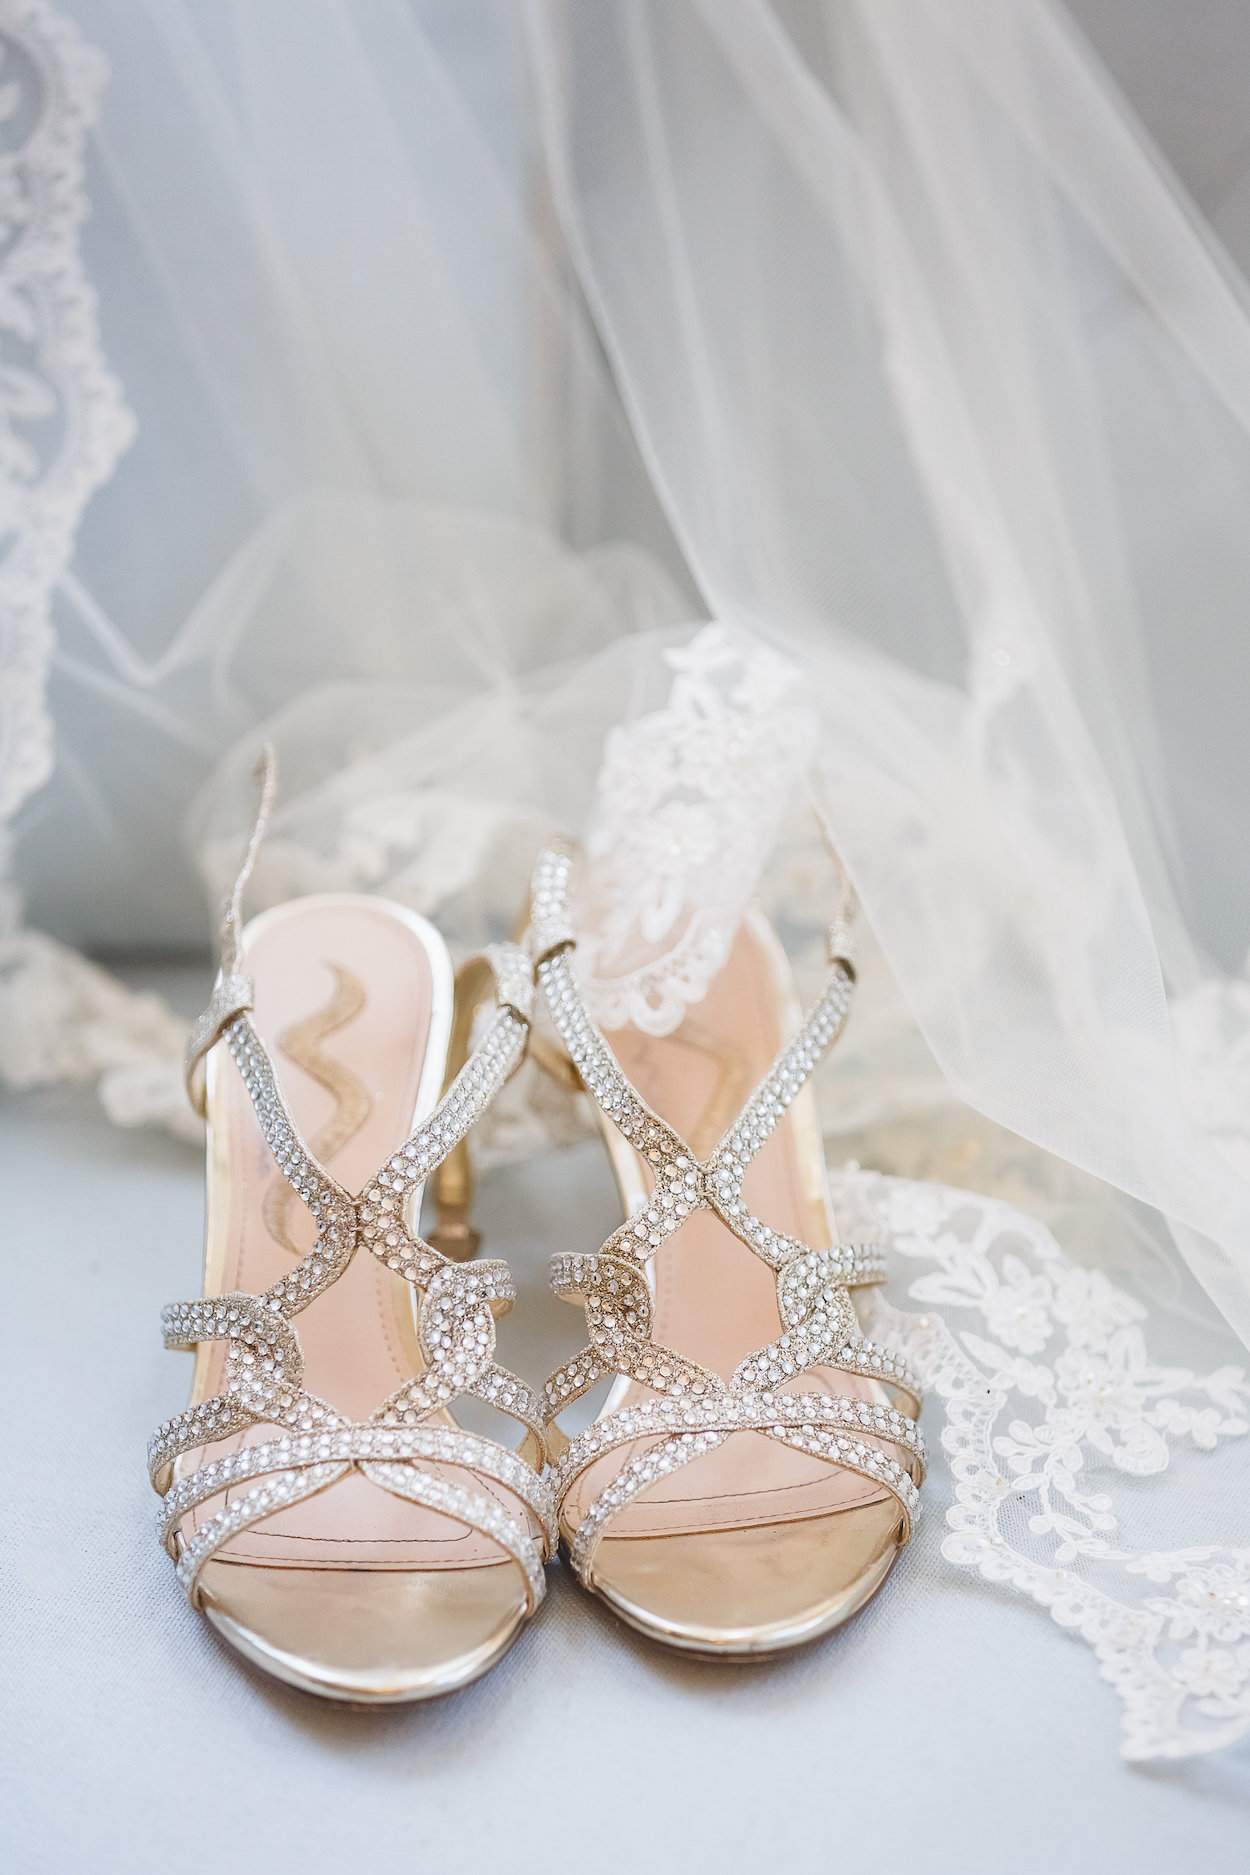 Silver Wedding Shoes - Science Museum of Virginia Wedding